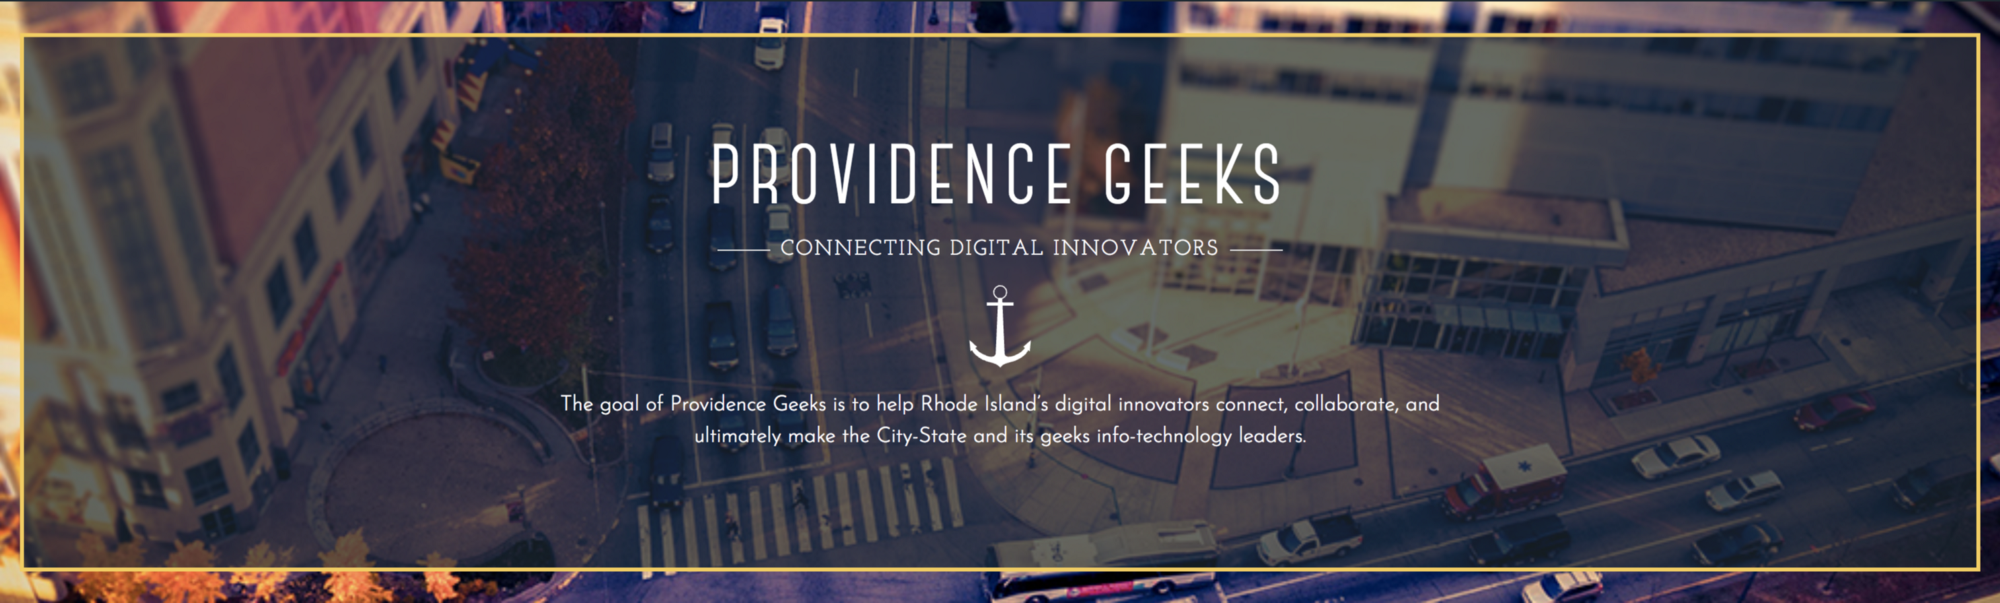 Providence Geeks Website